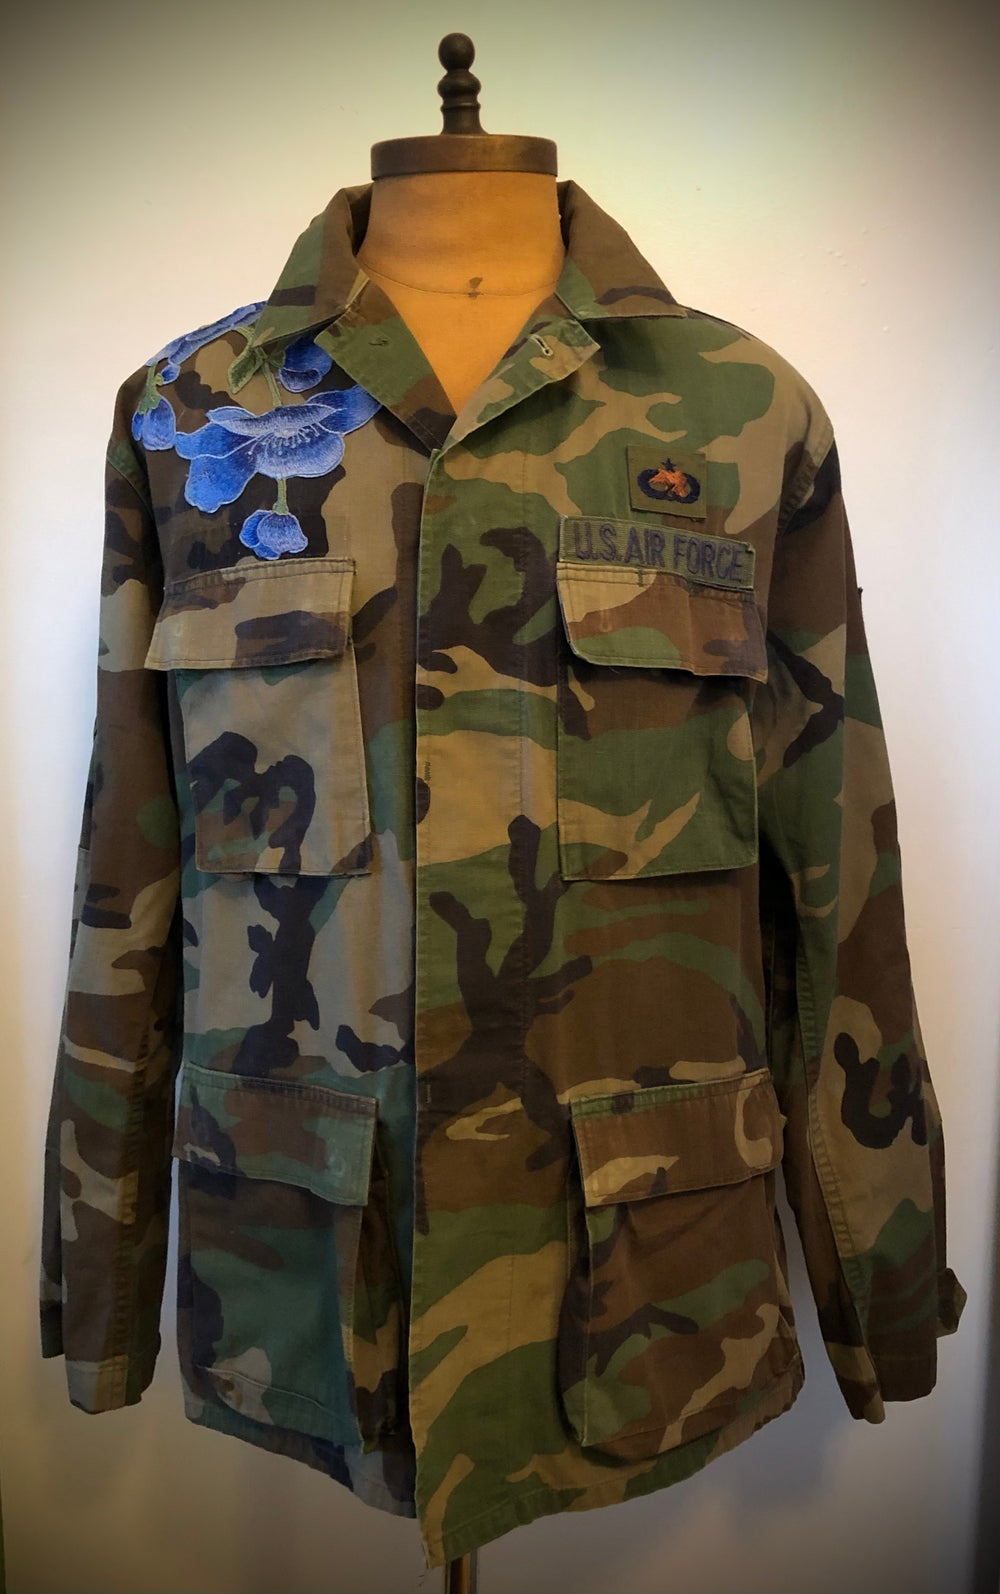 Flowers and Camo embroidered Air Force shirt